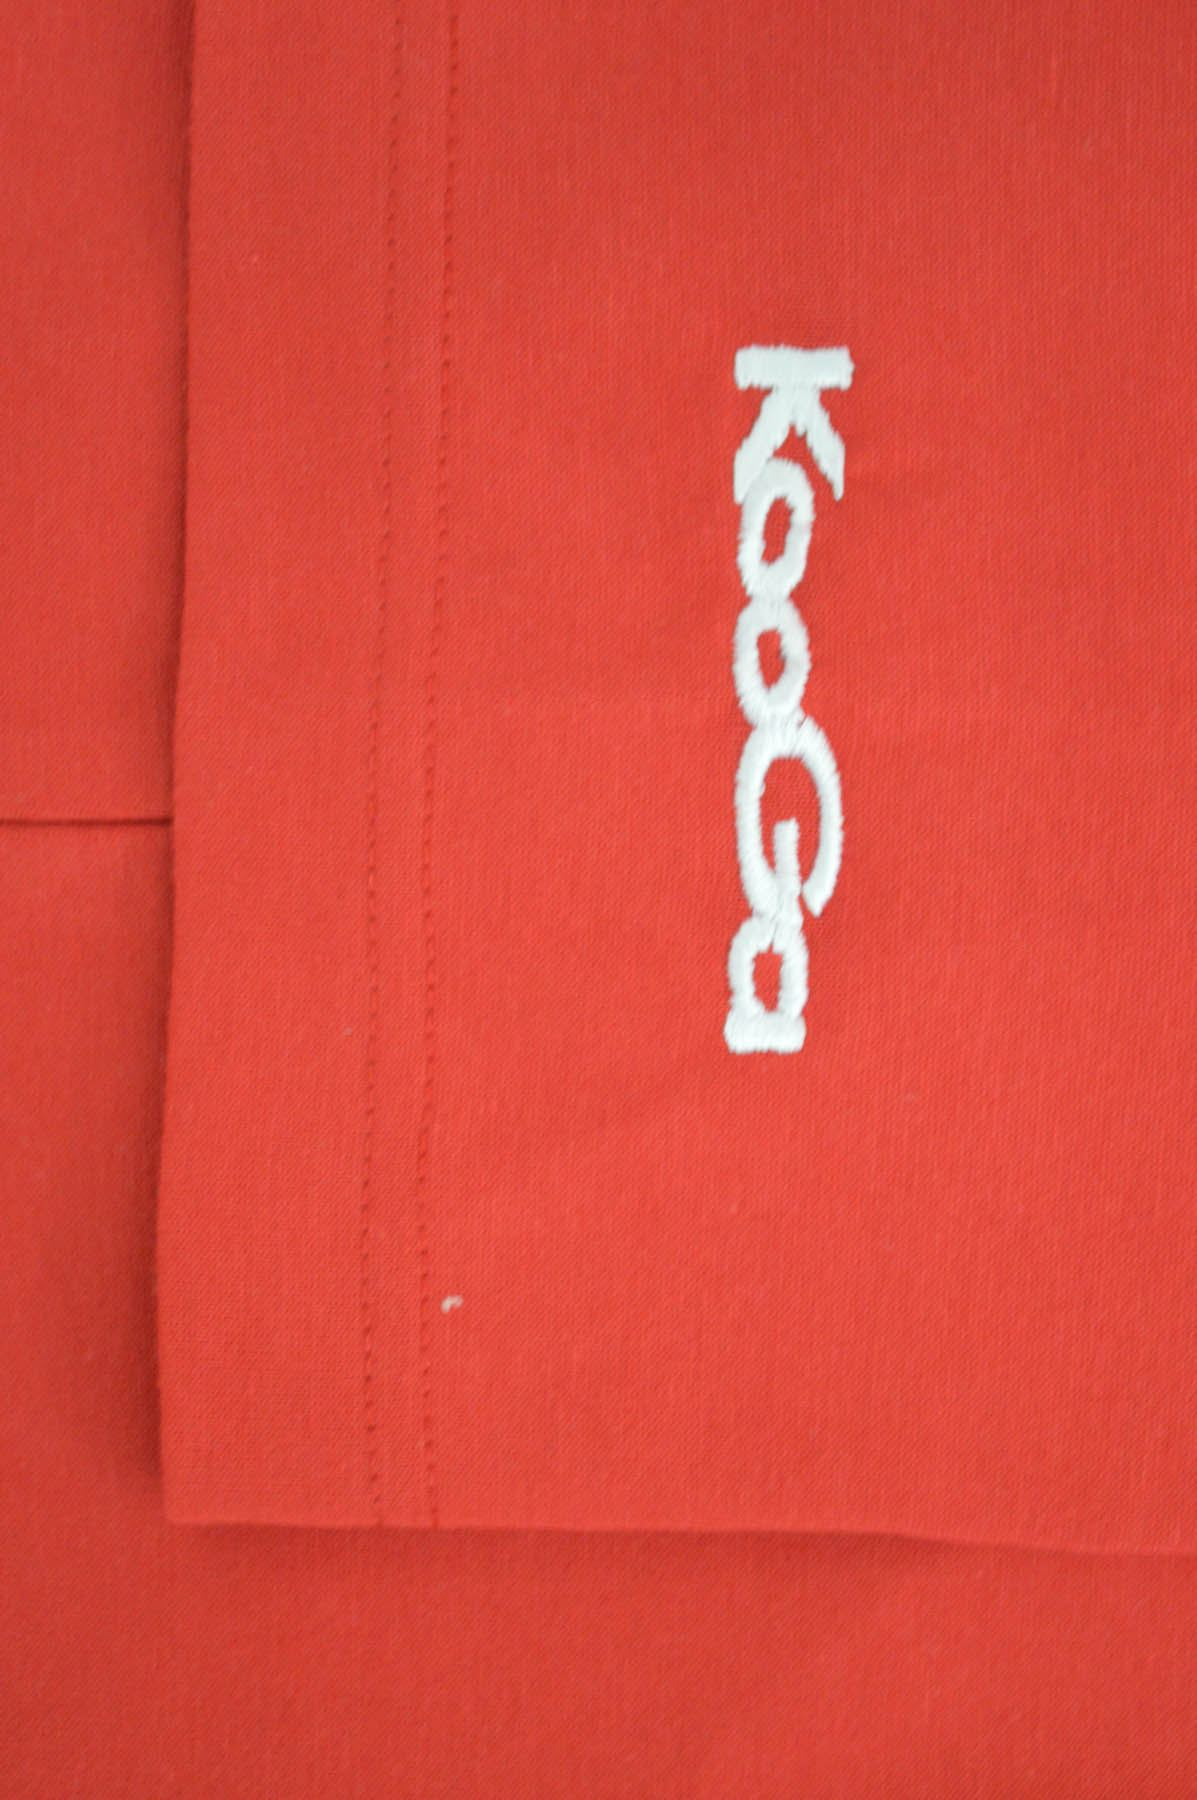 NEW-Kooga-Mens-Polo-Rugby-Shirt-Top-in-Red-or-Green-Size-S-amp-XL thumbnail 9